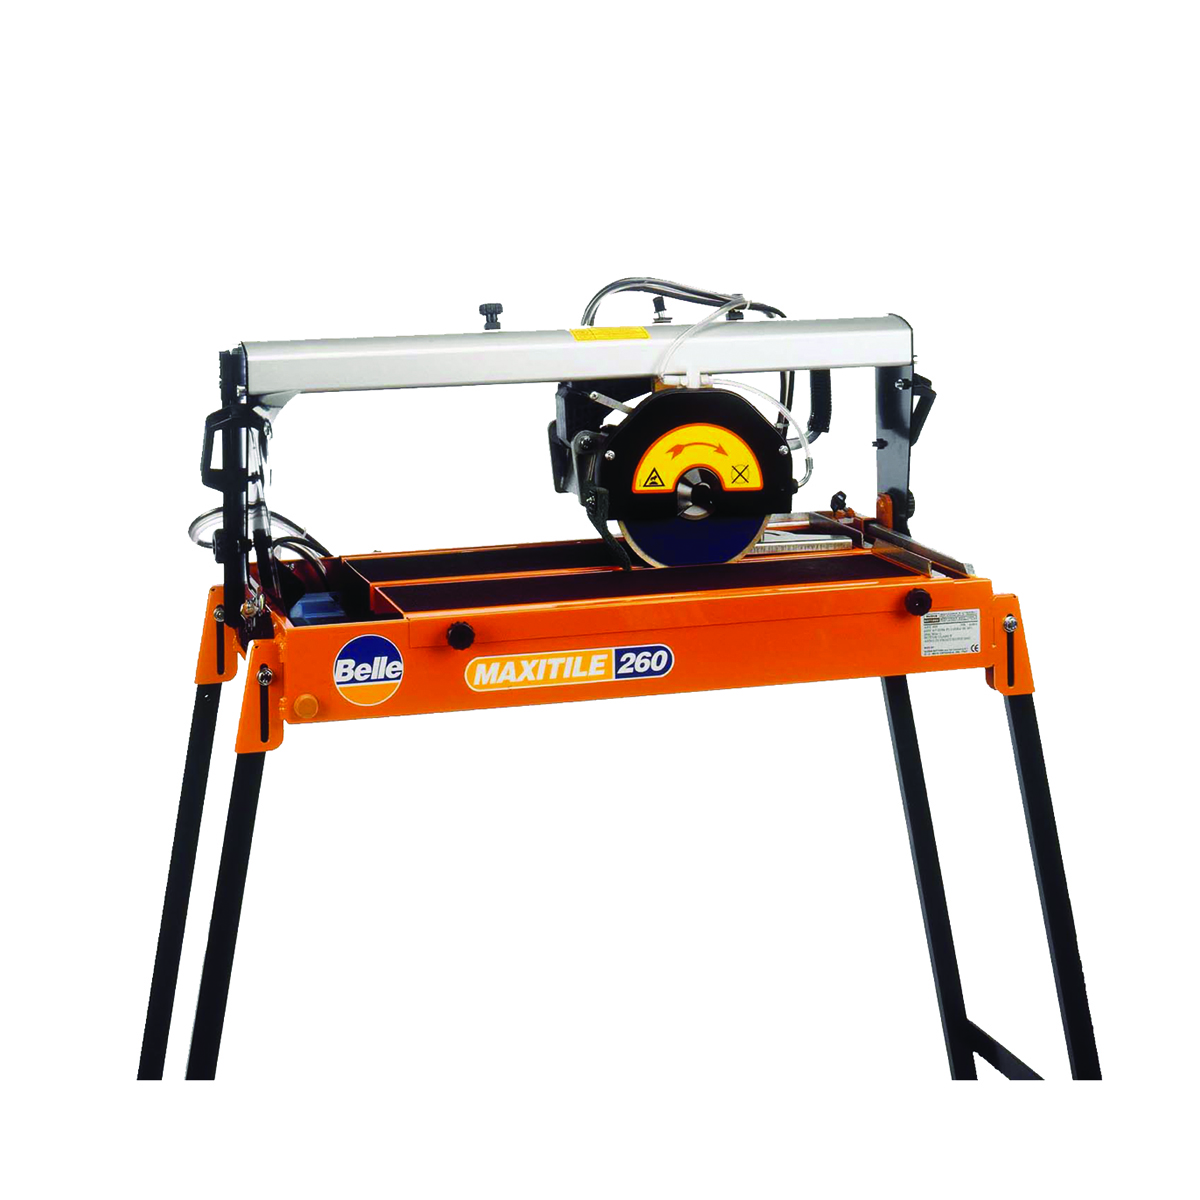 Tile Saw - Radial Type 600mm Capacity Electric